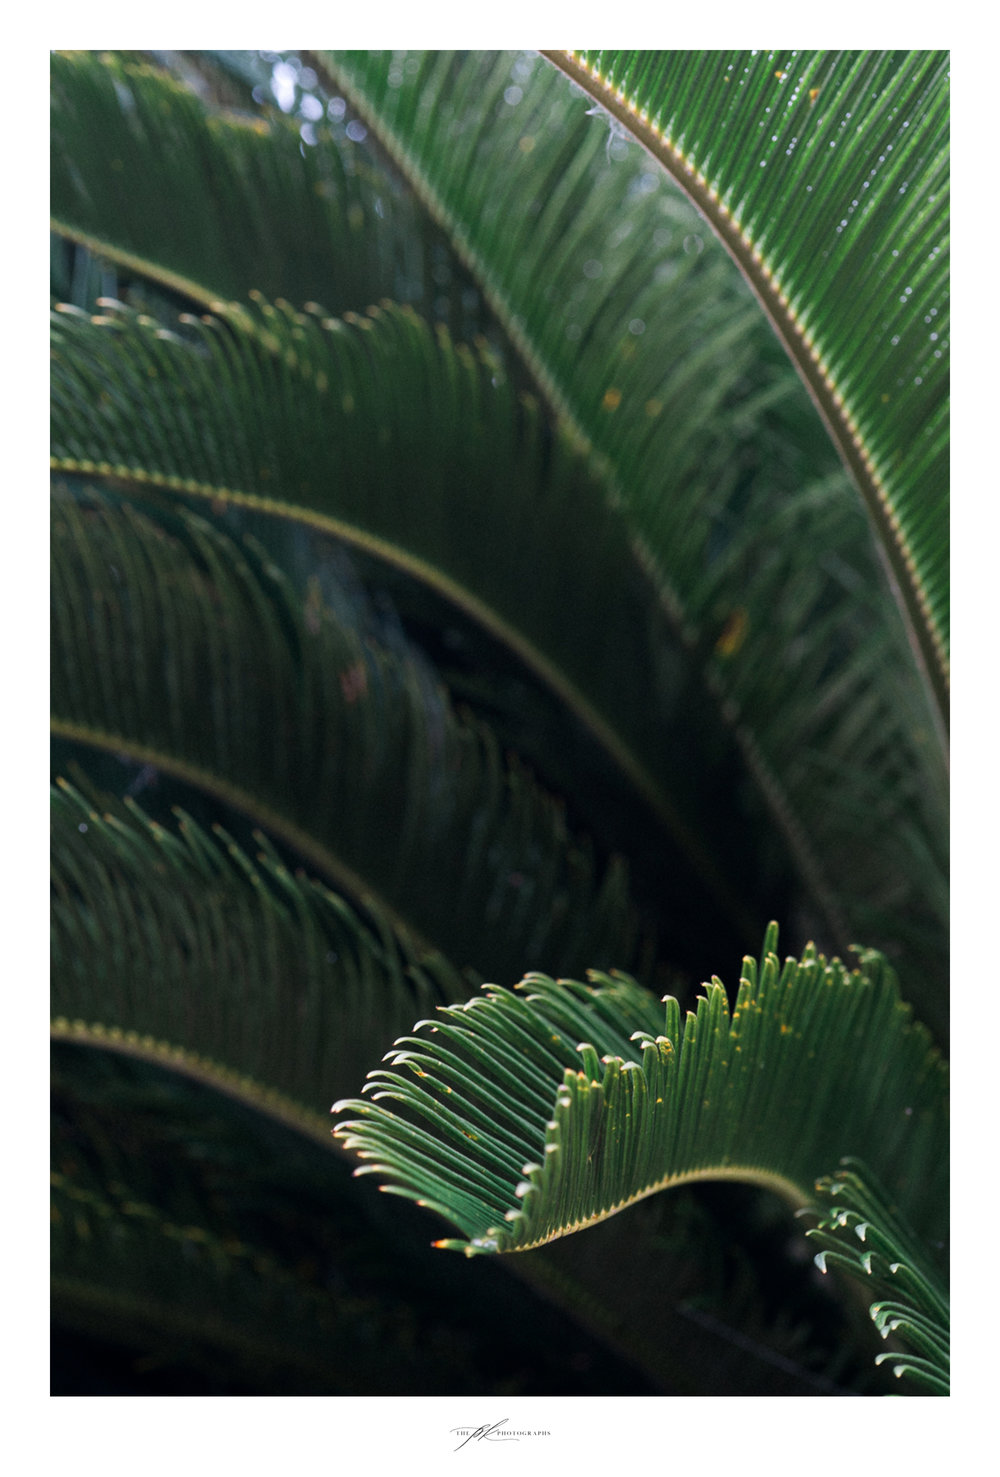 tree-texas-fern-leaves-up-close.jpg